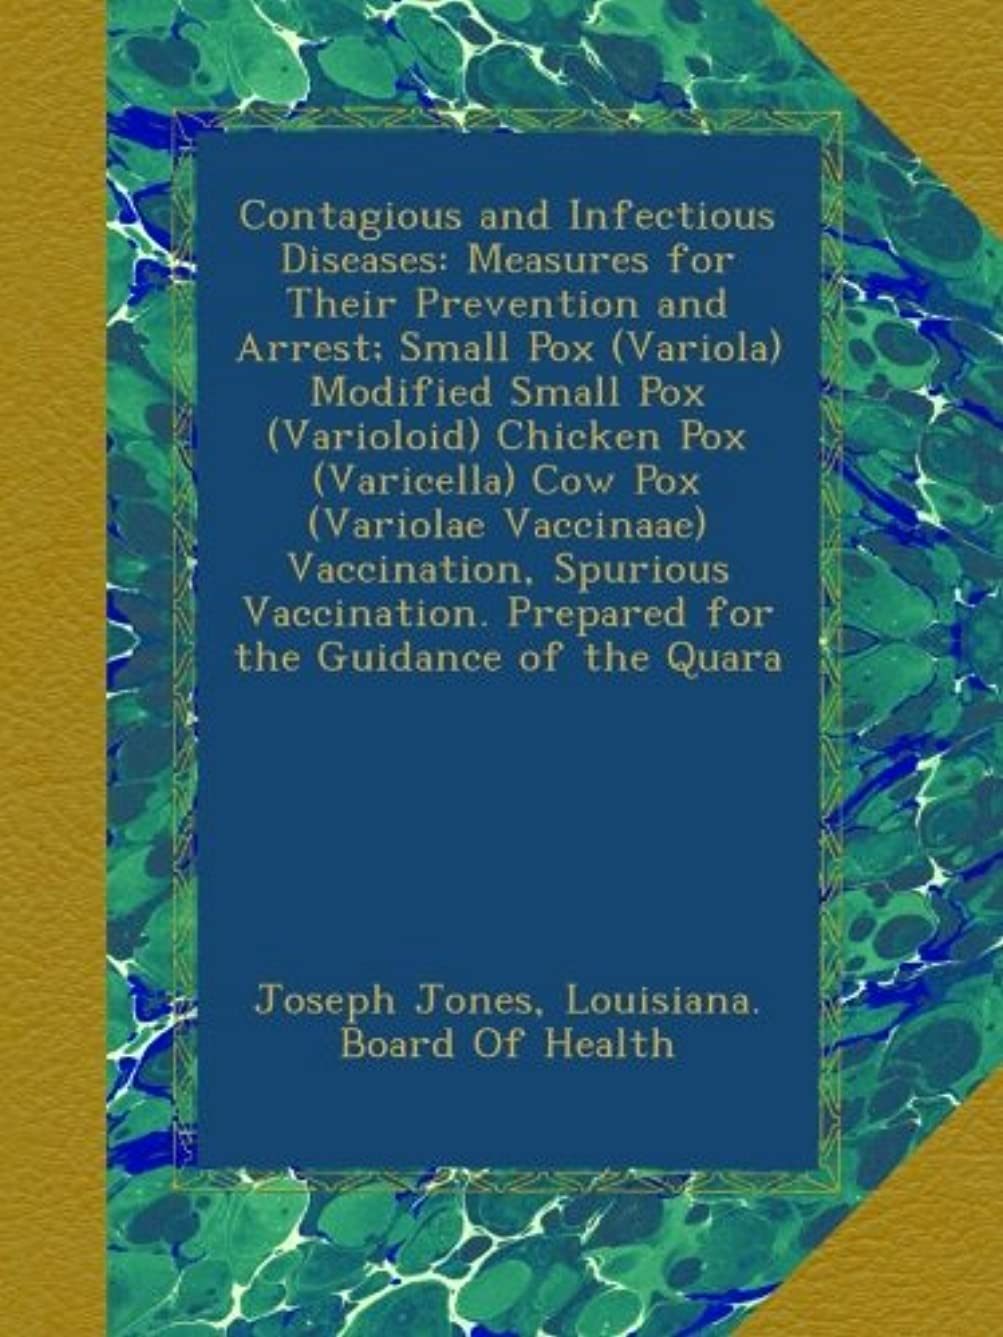 Contagious and Infectious Diseases: Measures for Their Prevention and Arrest; Small Pox (Variola) Modified Small Pox (Varioloid) Chicken Pox (Varicella) Cow Pox (Variolae Vaccinaae) Vaccination, Spurious Vaccination. Prepared for the Guidance of the Quara